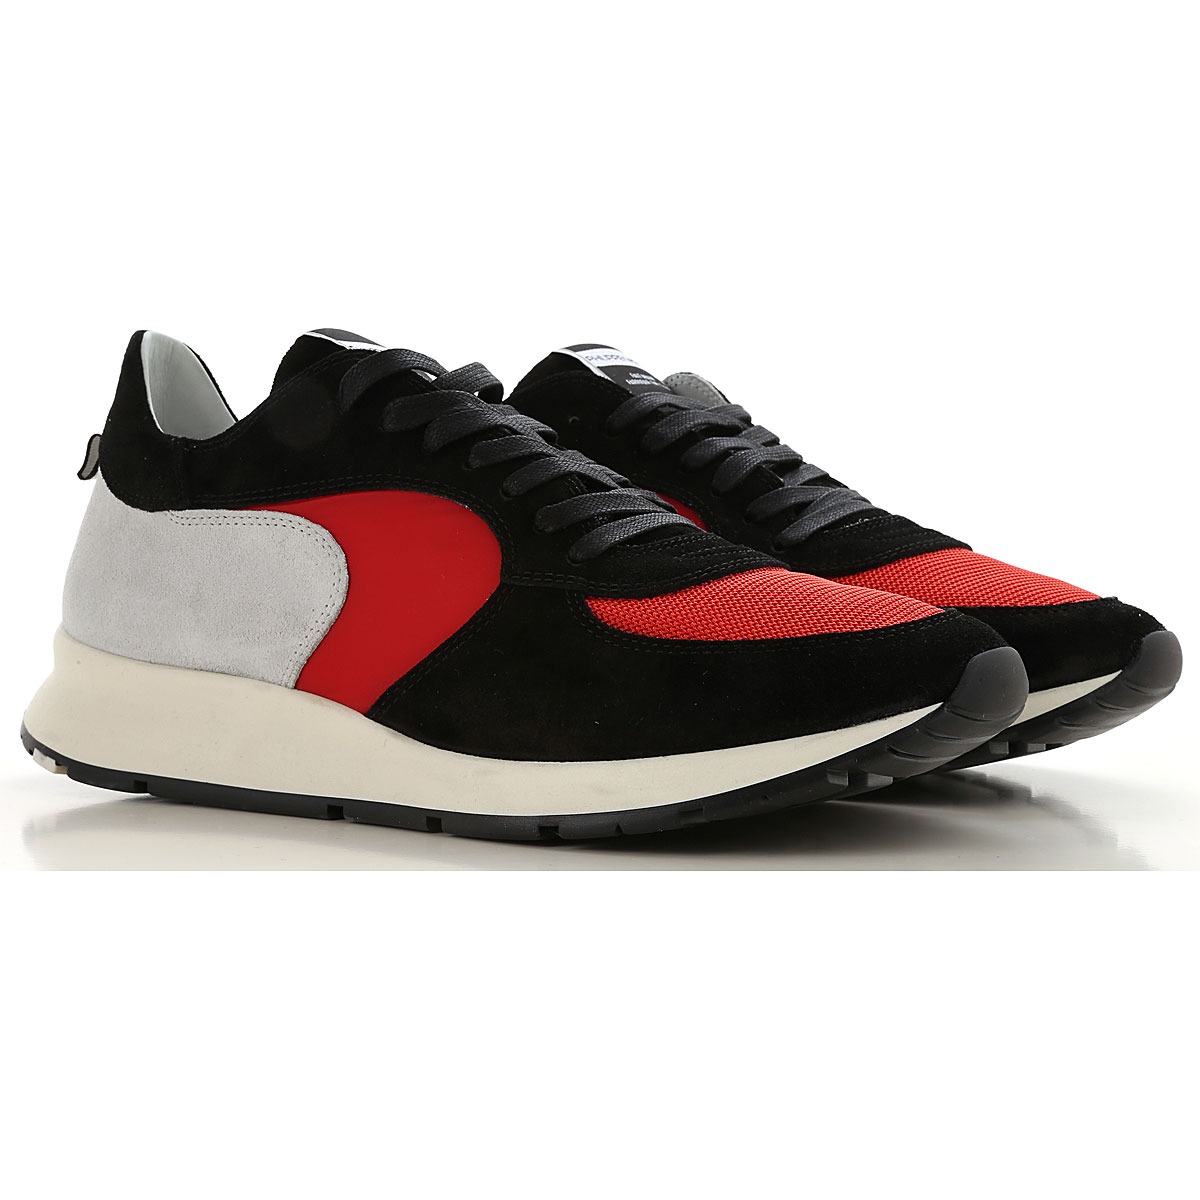 Philippe Model Sneakers for Men On Sale in Outlet, Black, Leather, 2019, 7.5 8